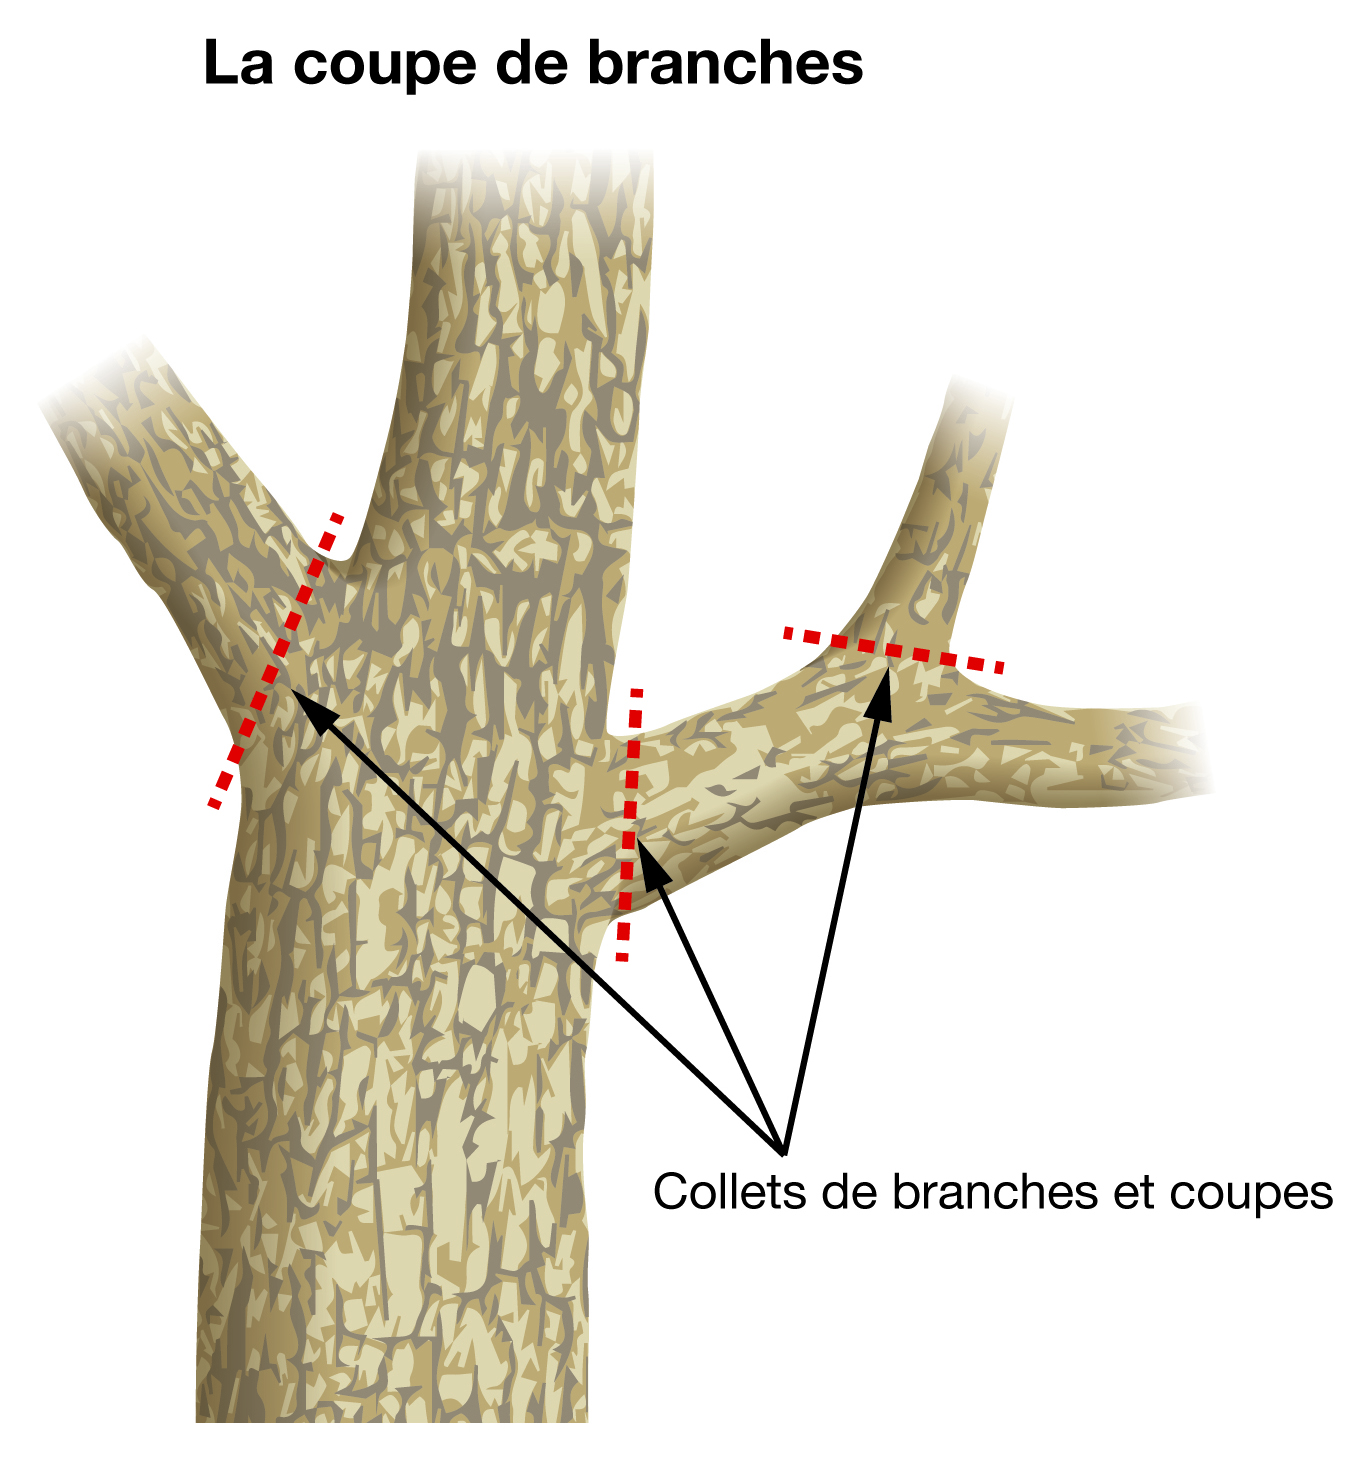 La coupe de branches